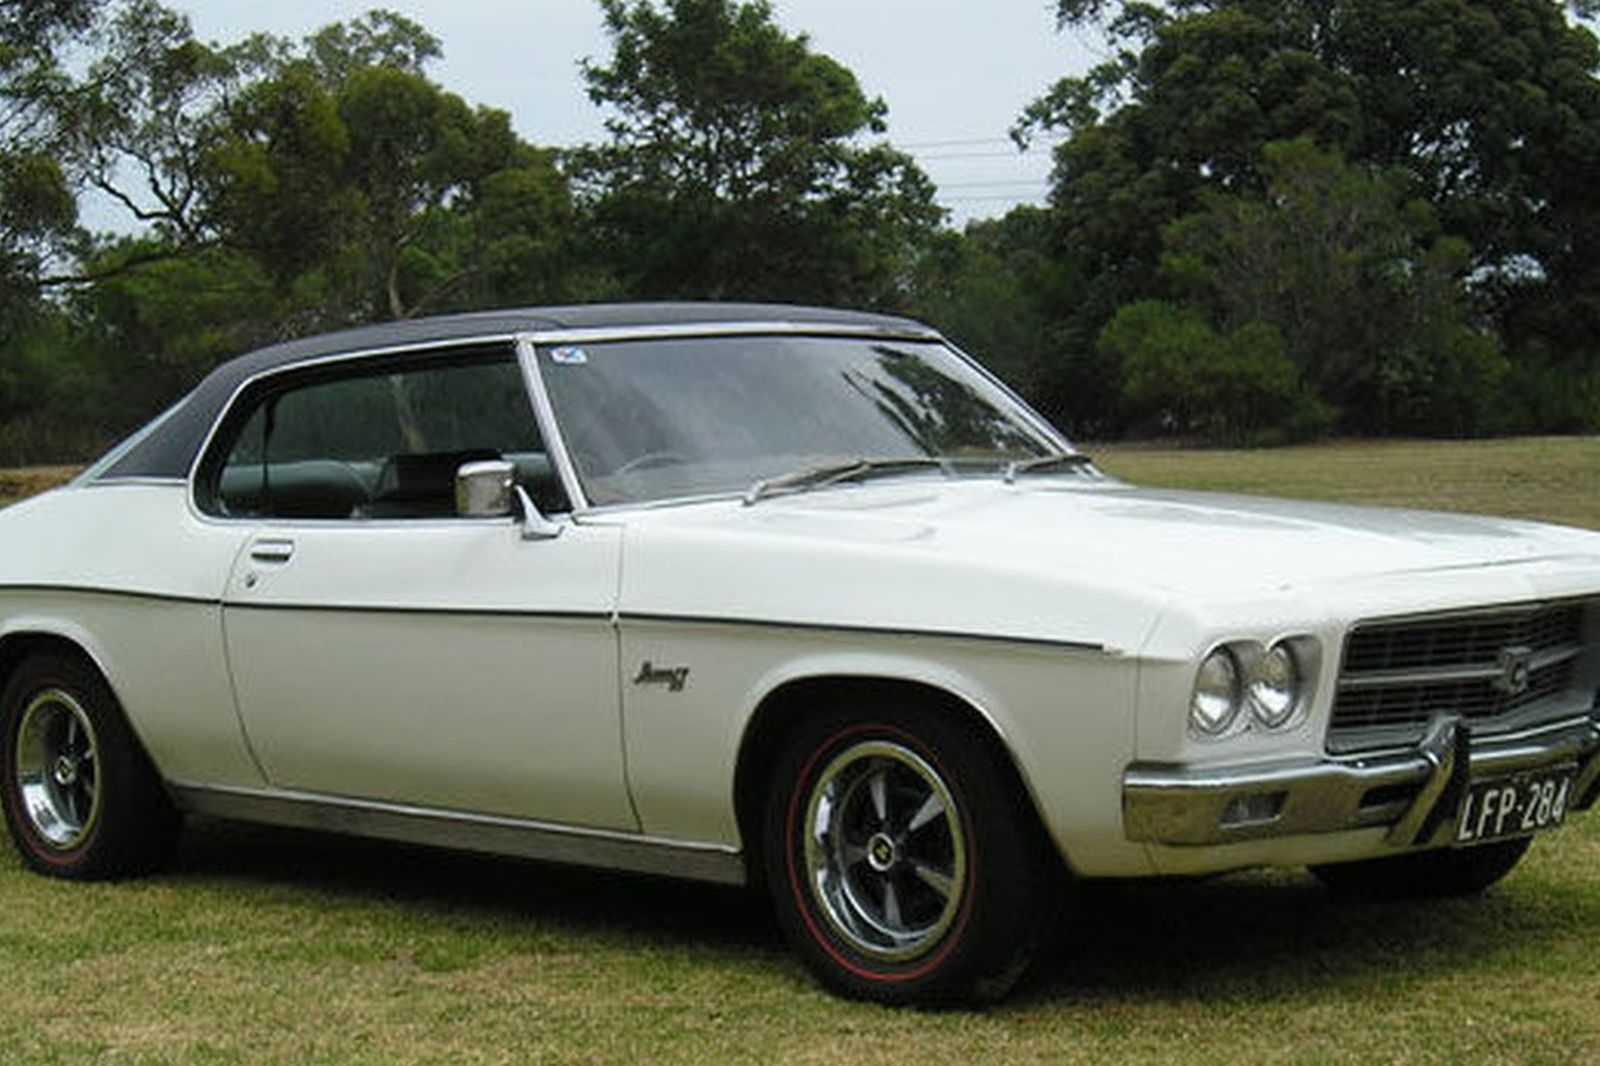 Sold: Holden HQ Monaro LS Coupe Auctions - Lot 49 - Shannons